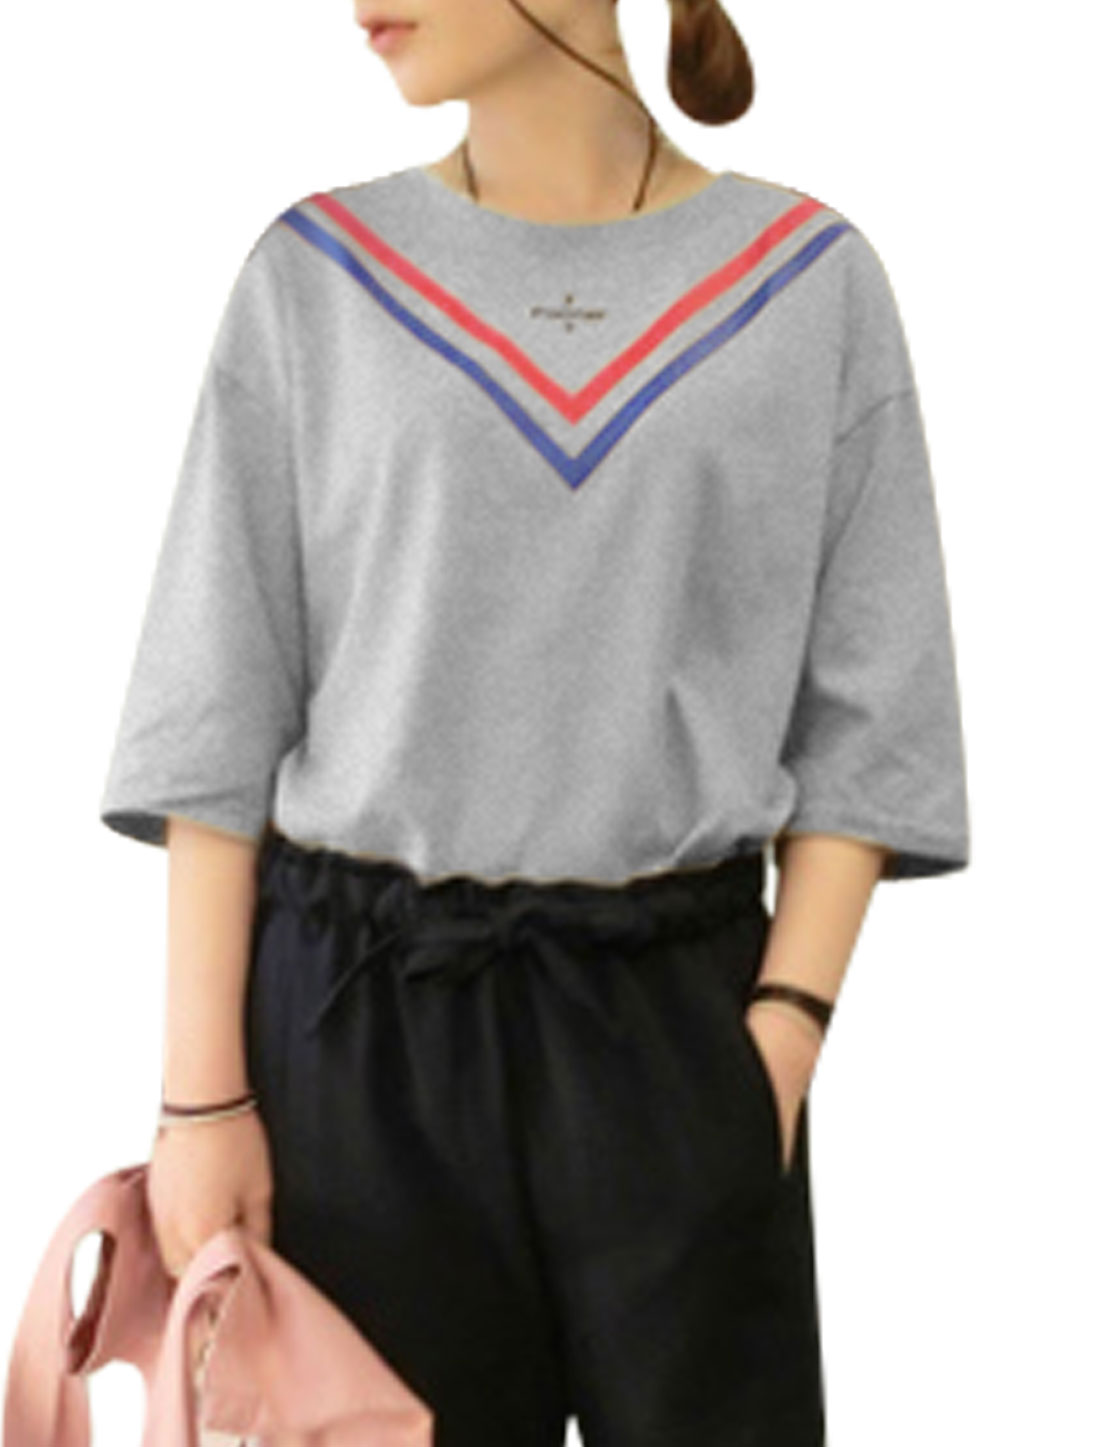 Woman V Pattern Round Neck 3/4 Sleeves Slipover Casual Tee Gray XS